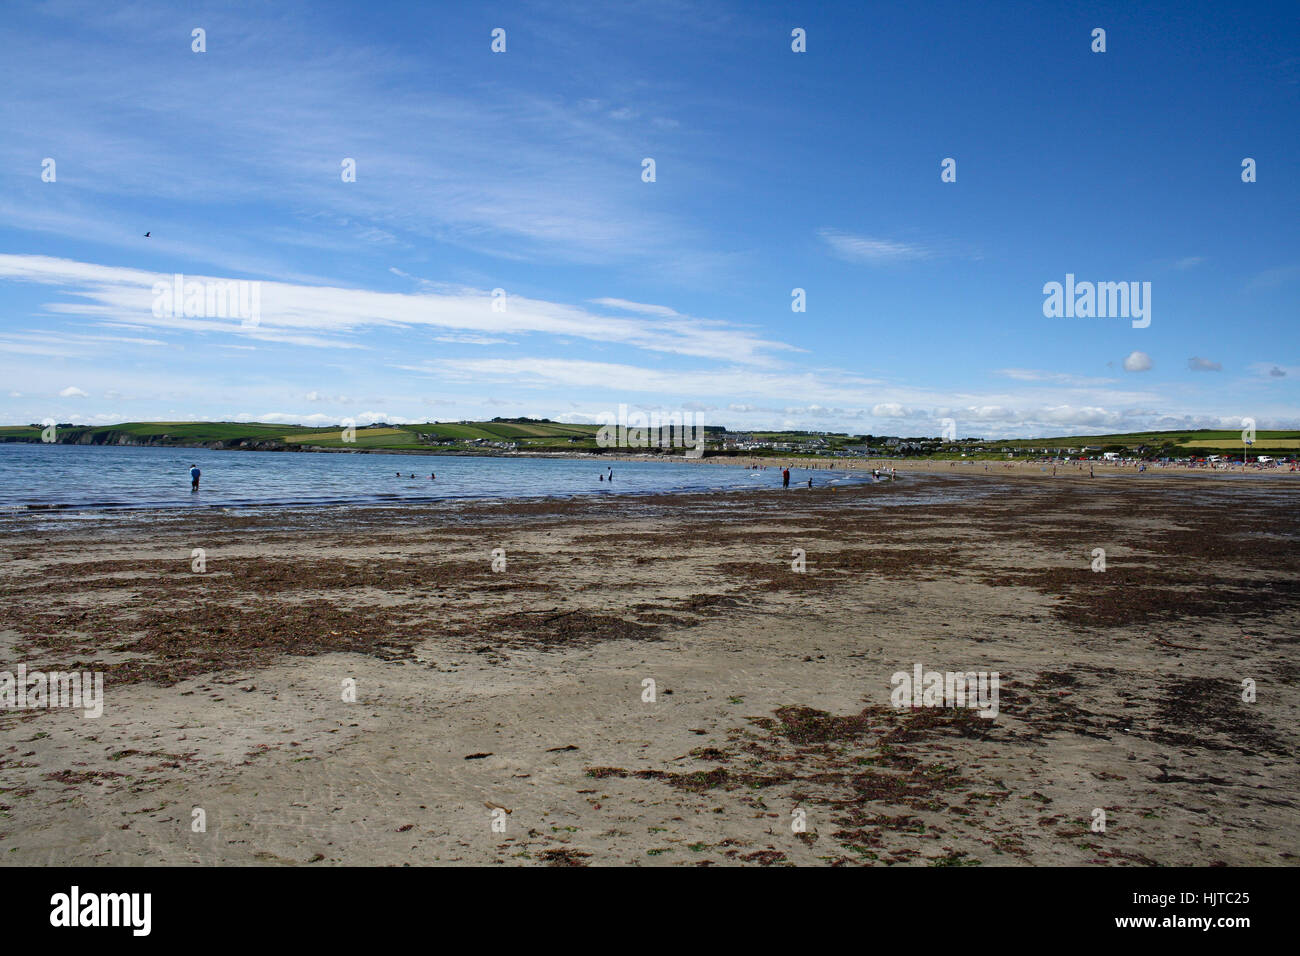 July 27, 2012, Myrtleville, Ireland. People enjoying a rare sunny Irish summer day on the Myrtleville beach. - Stock Image